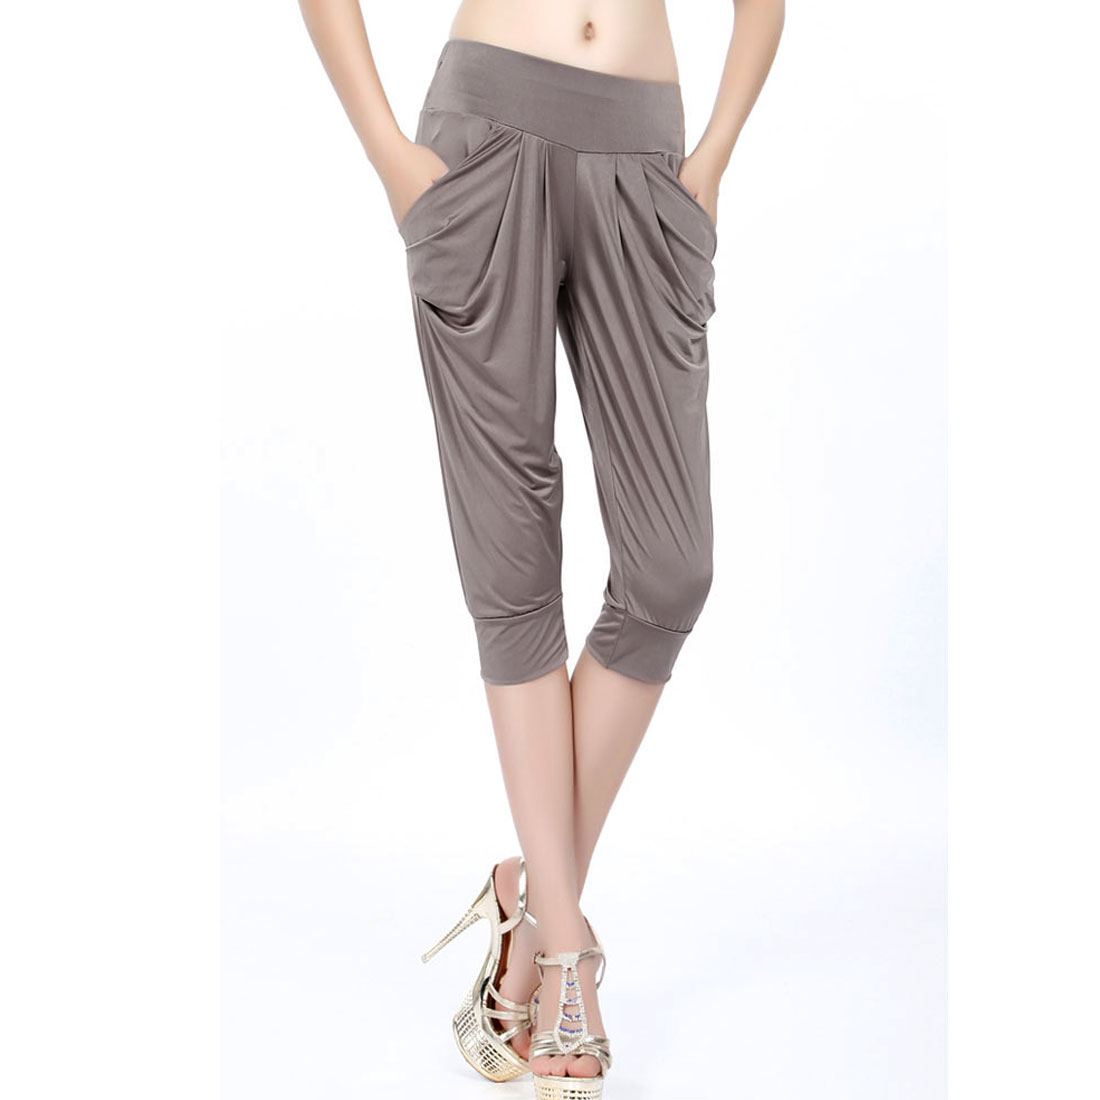 Women Elastic Waist Pockets Side Sports Harem Style Cropped Pants Gray XS